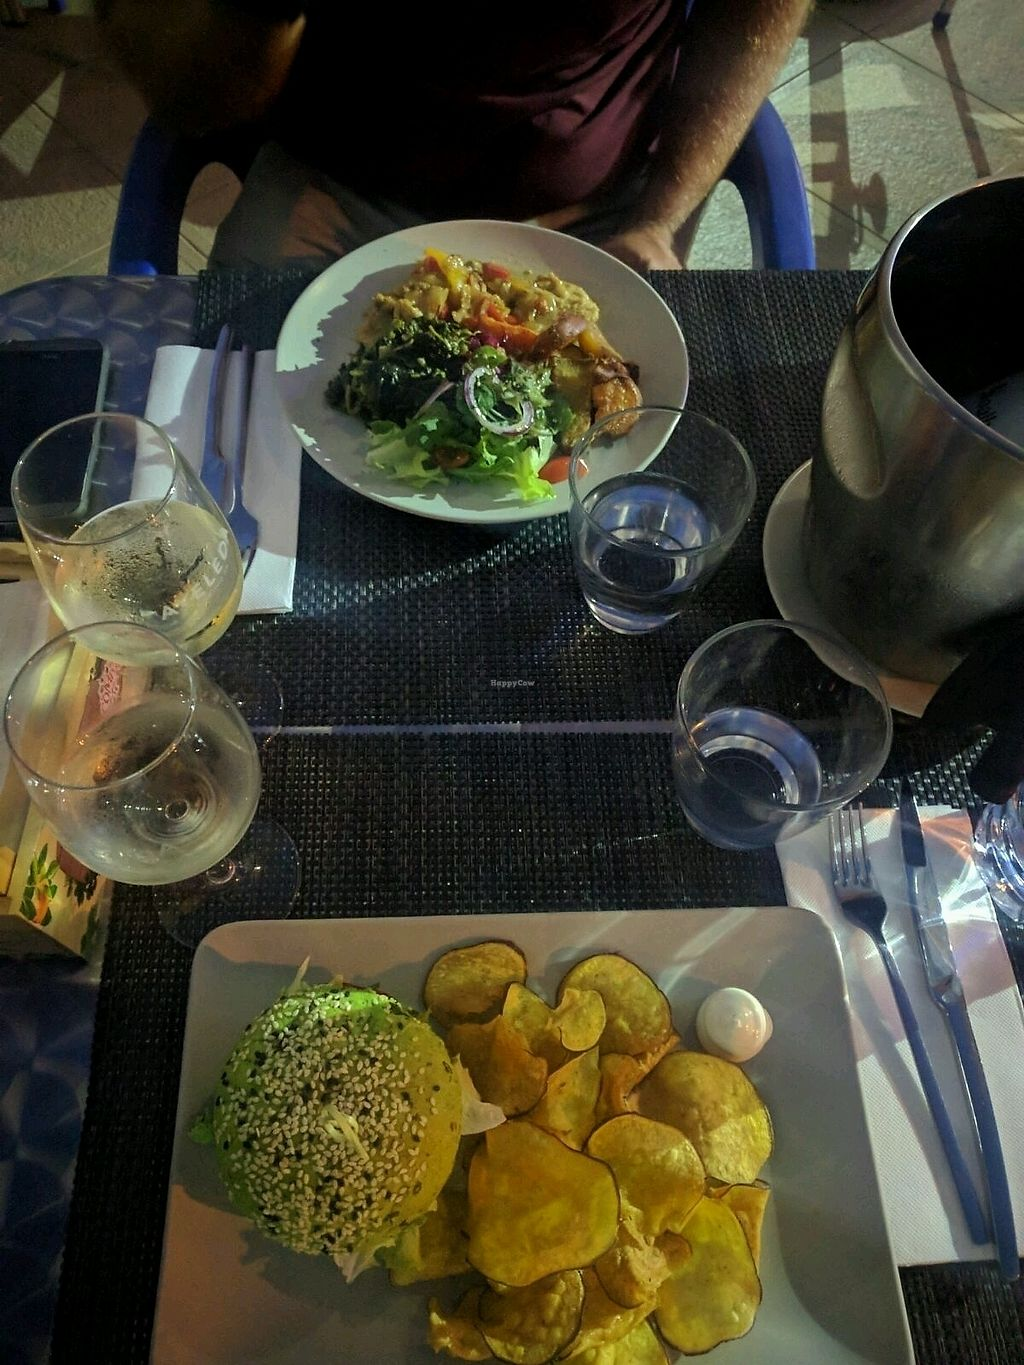 """Photo of Veggie Cafe  by <a href=""""/members/profile/MirceaP"""">MirceaP</a> <br/>Burger and seitan <br/> September 2, 2017  - <a href='/contact/abuse/image/95965/299936'>Report</a>"""